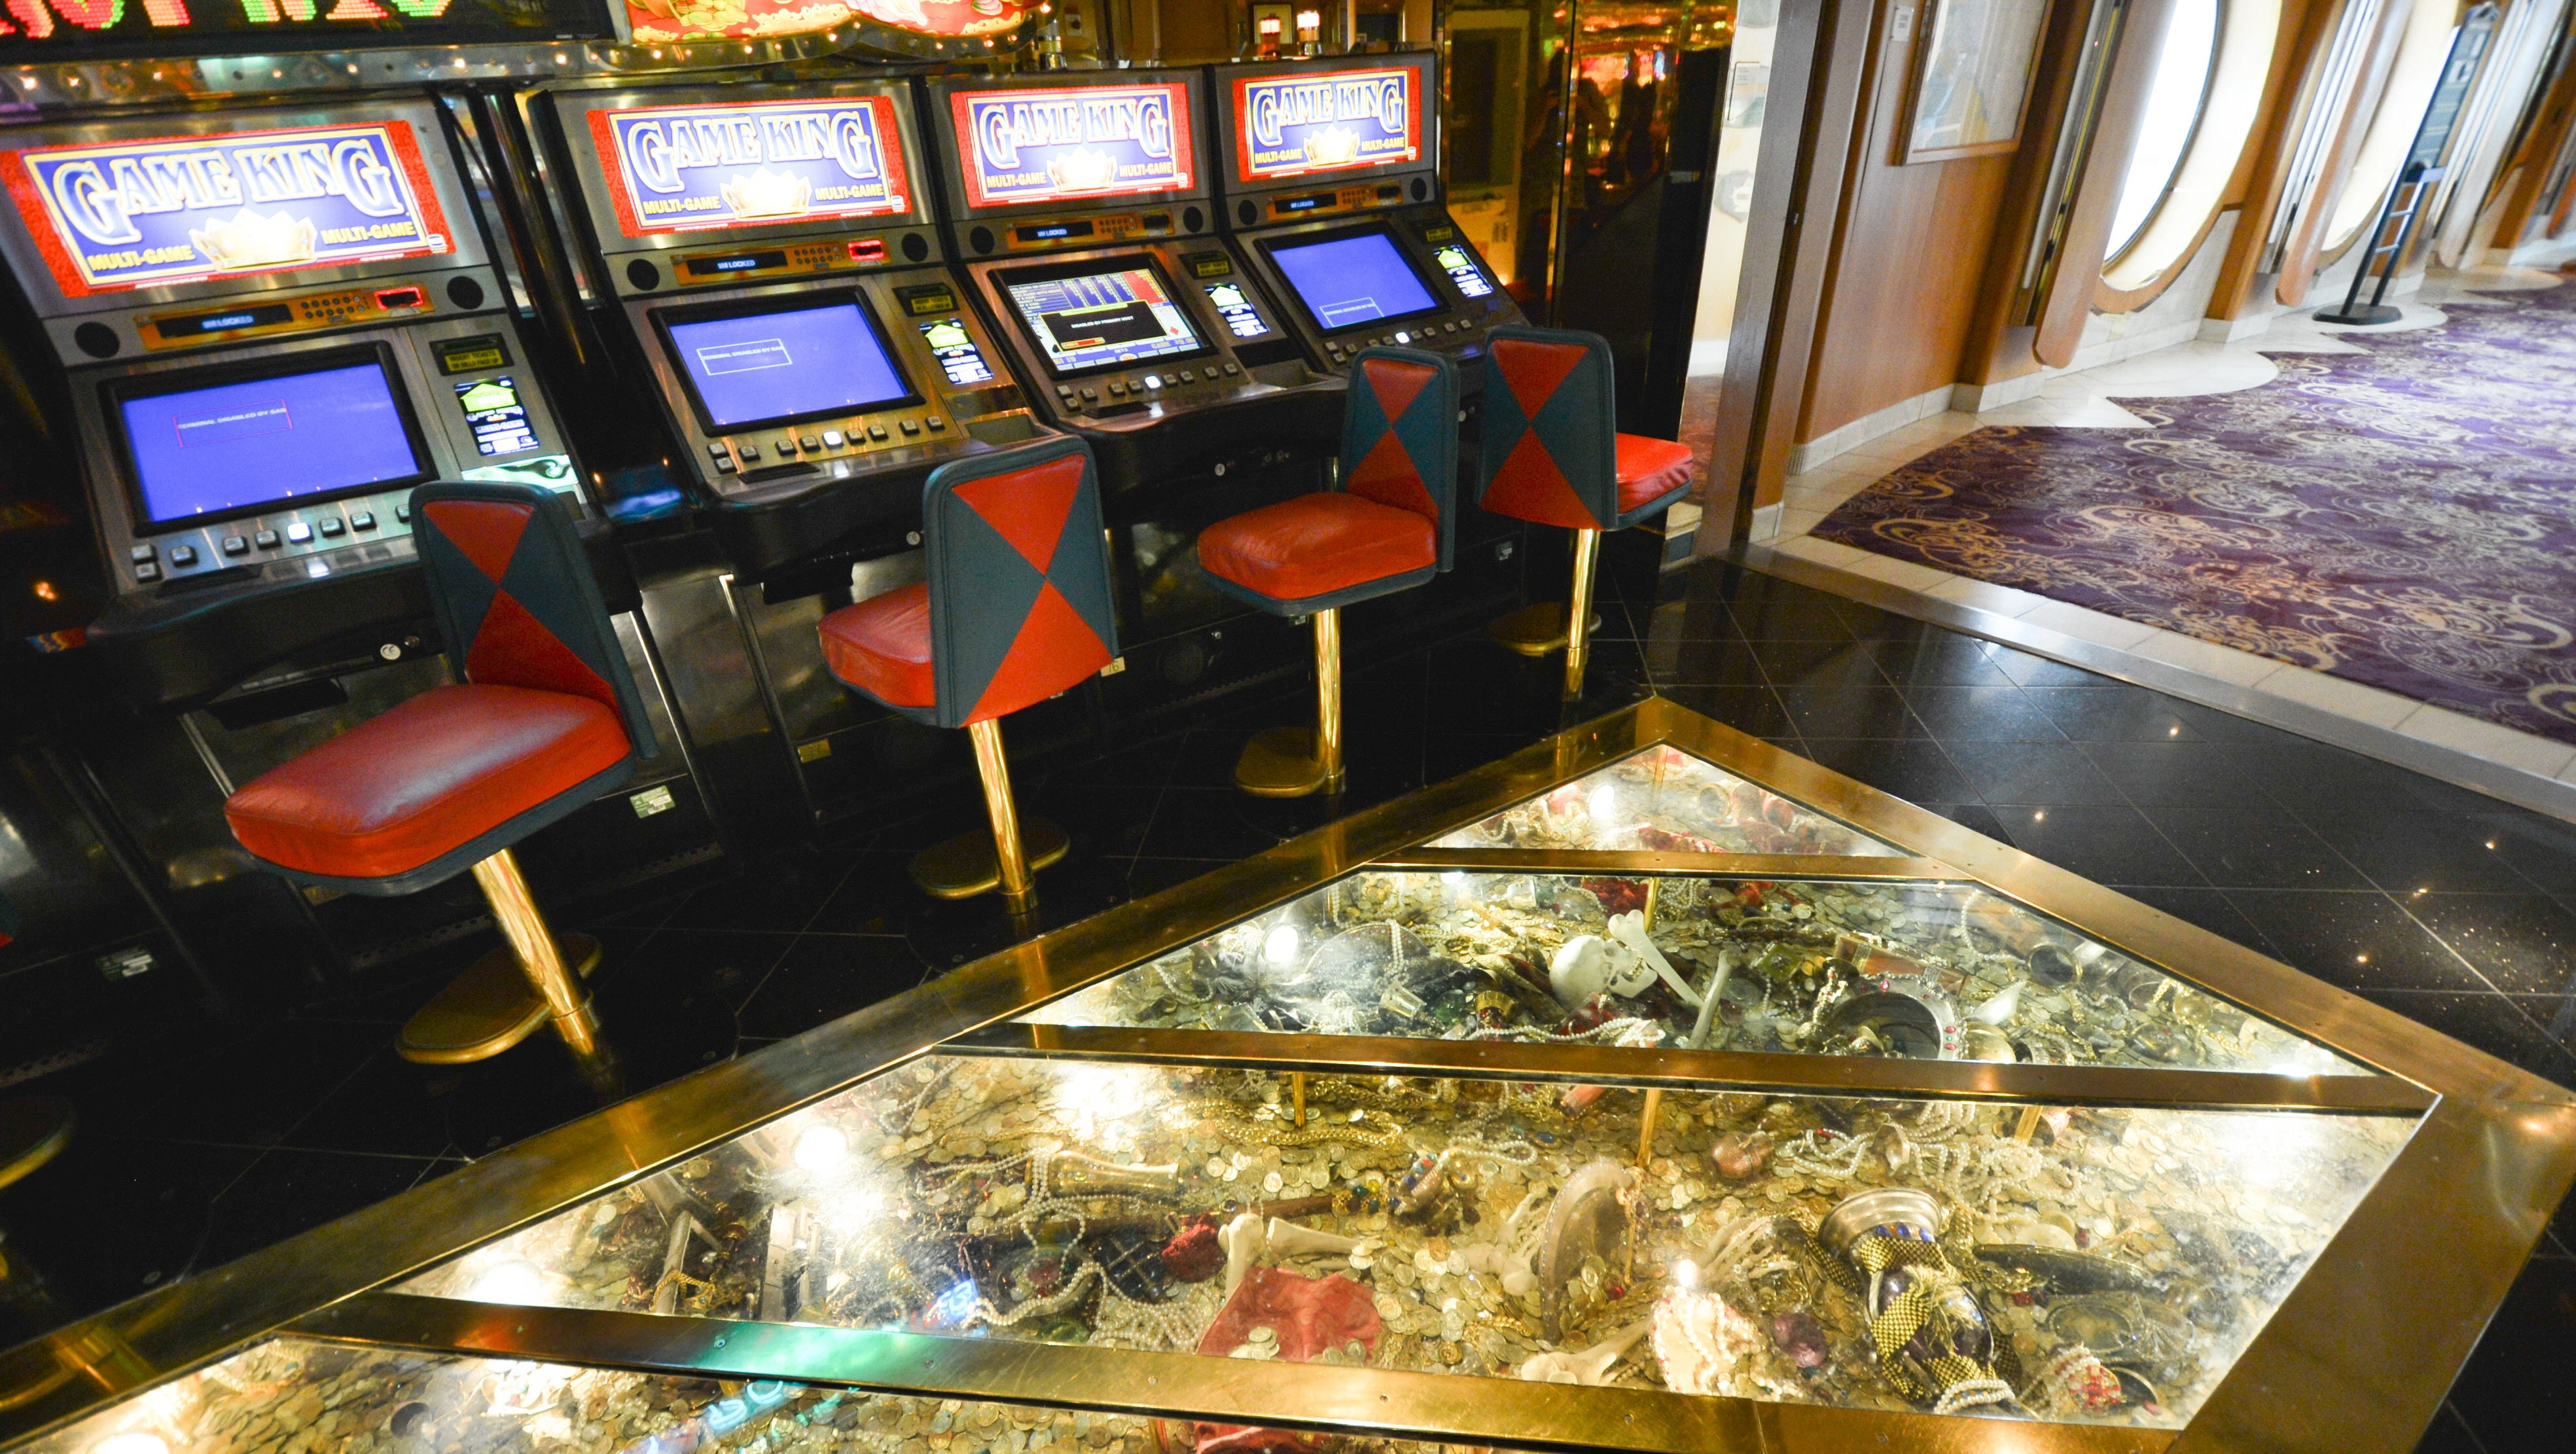 """A glass floor in the Casino Royale offers a view down to """"treasures."""""""